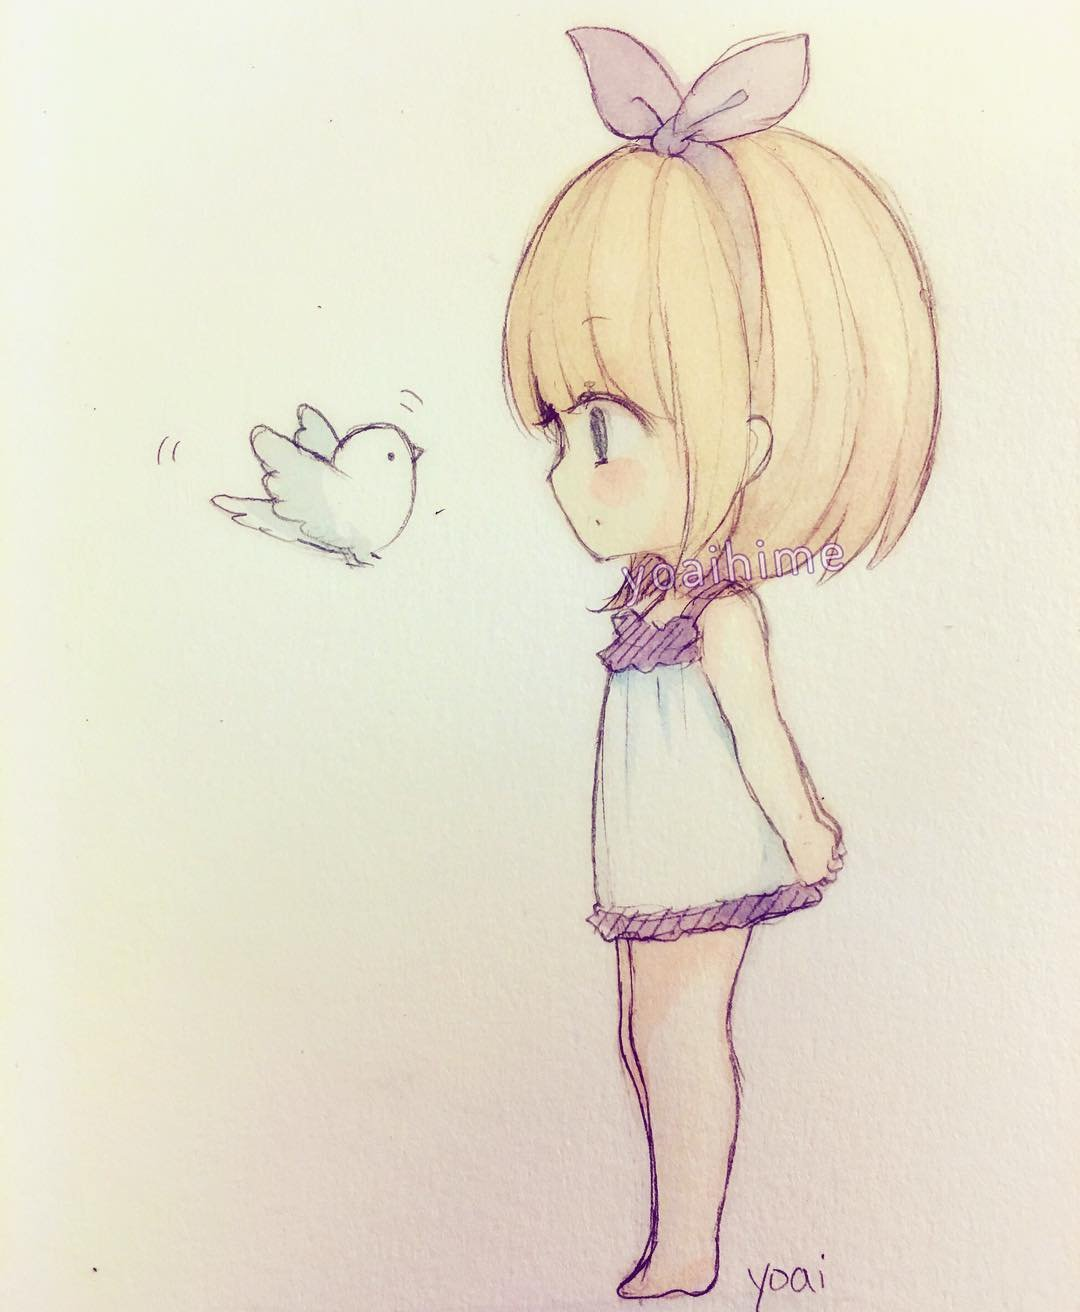 Chibi Drawing In Pencil Anime For   Easy Cute Anime Drawings In